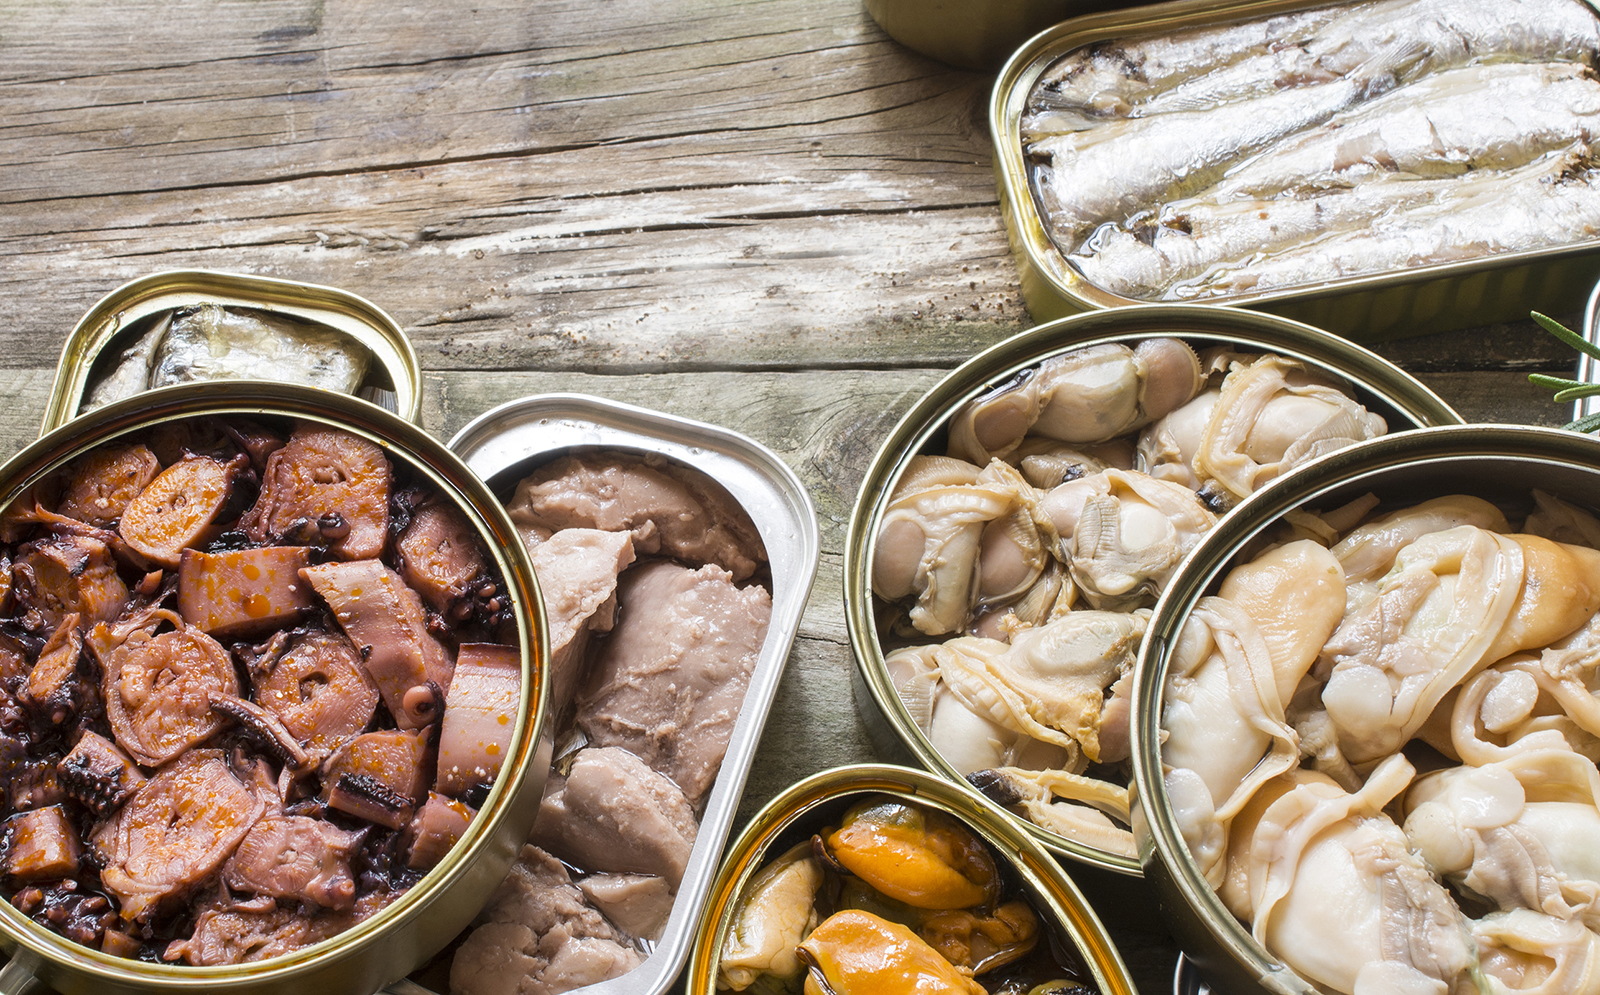 Assortment of cans of canned with different types of fish and se